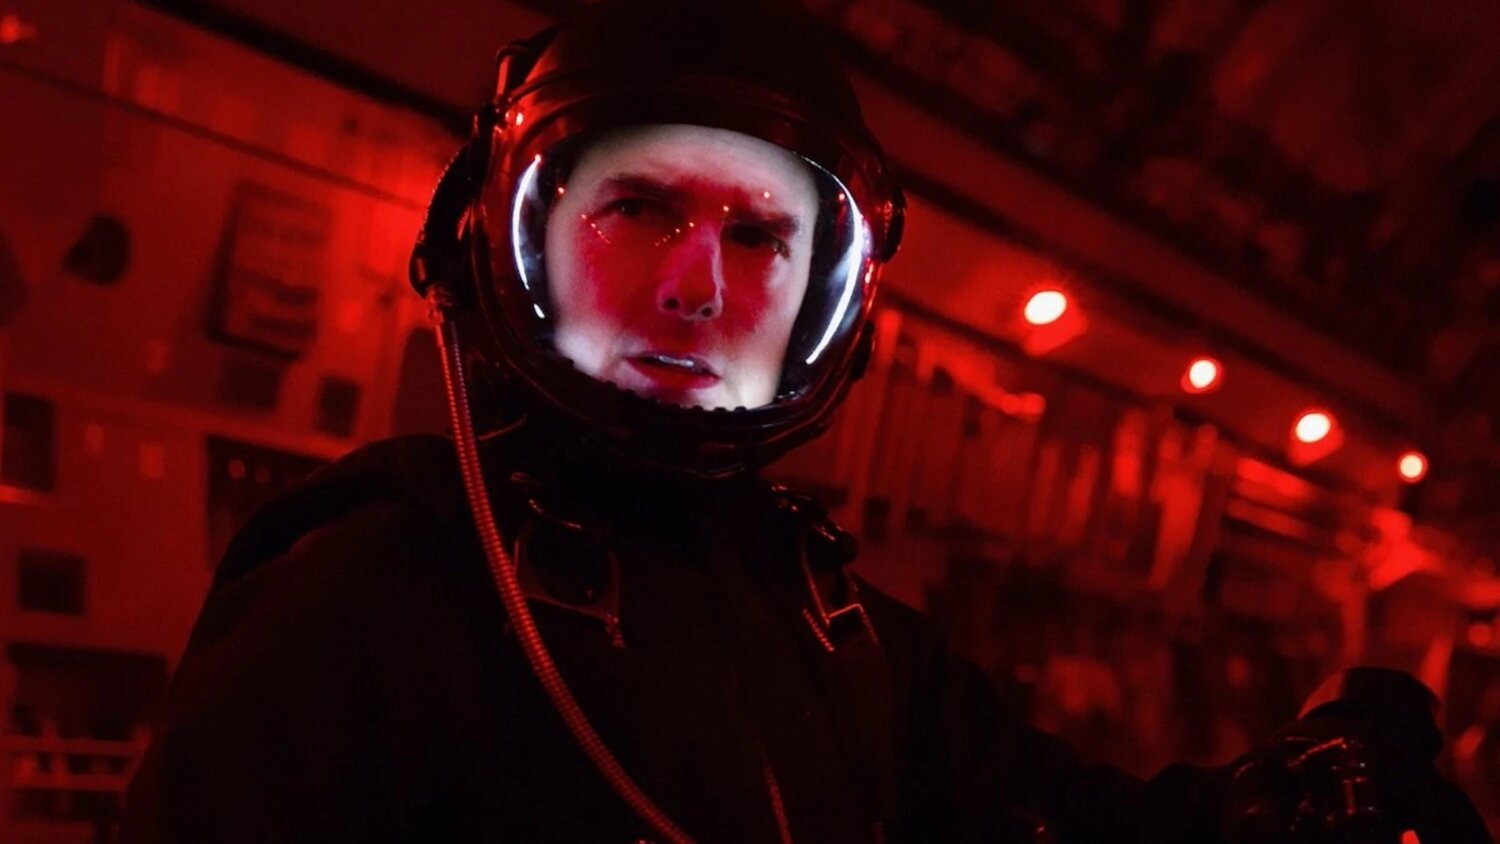 Doug Liman Set To Direct Tom Cruise's Outer Space Movie